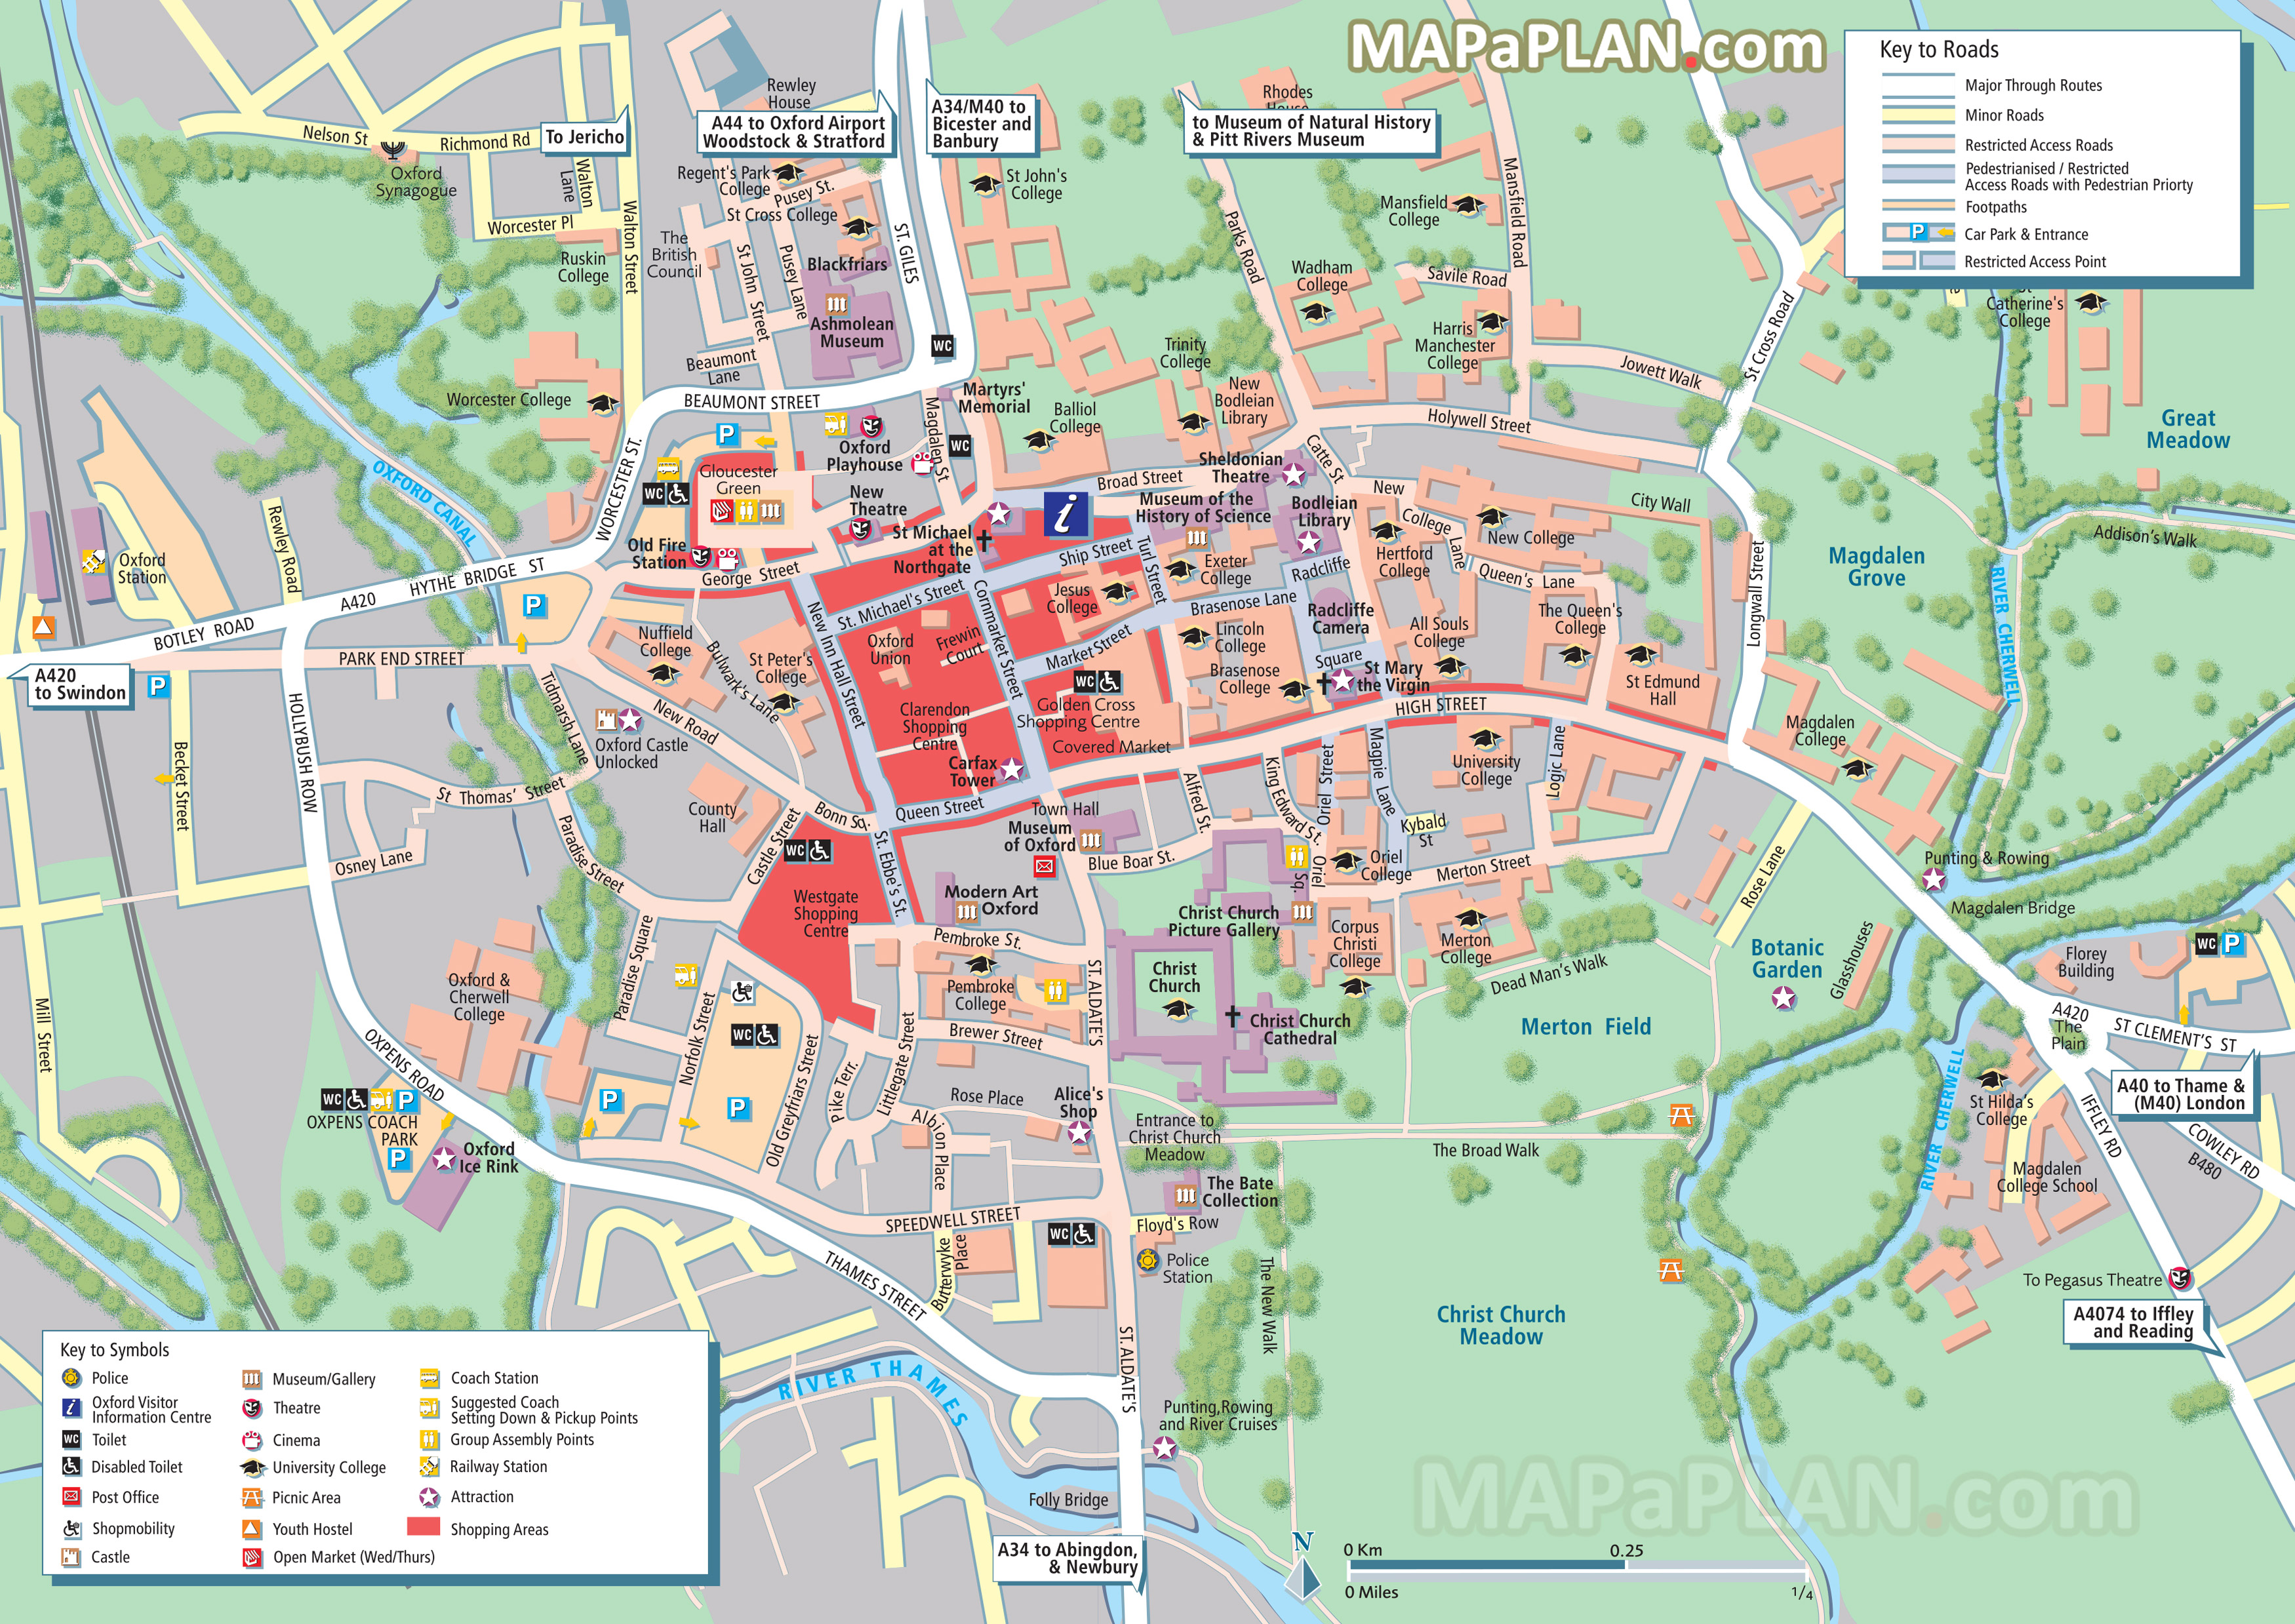 Map Of Oxford Street Oxford maps   Top tourist attractions   Free, printable city